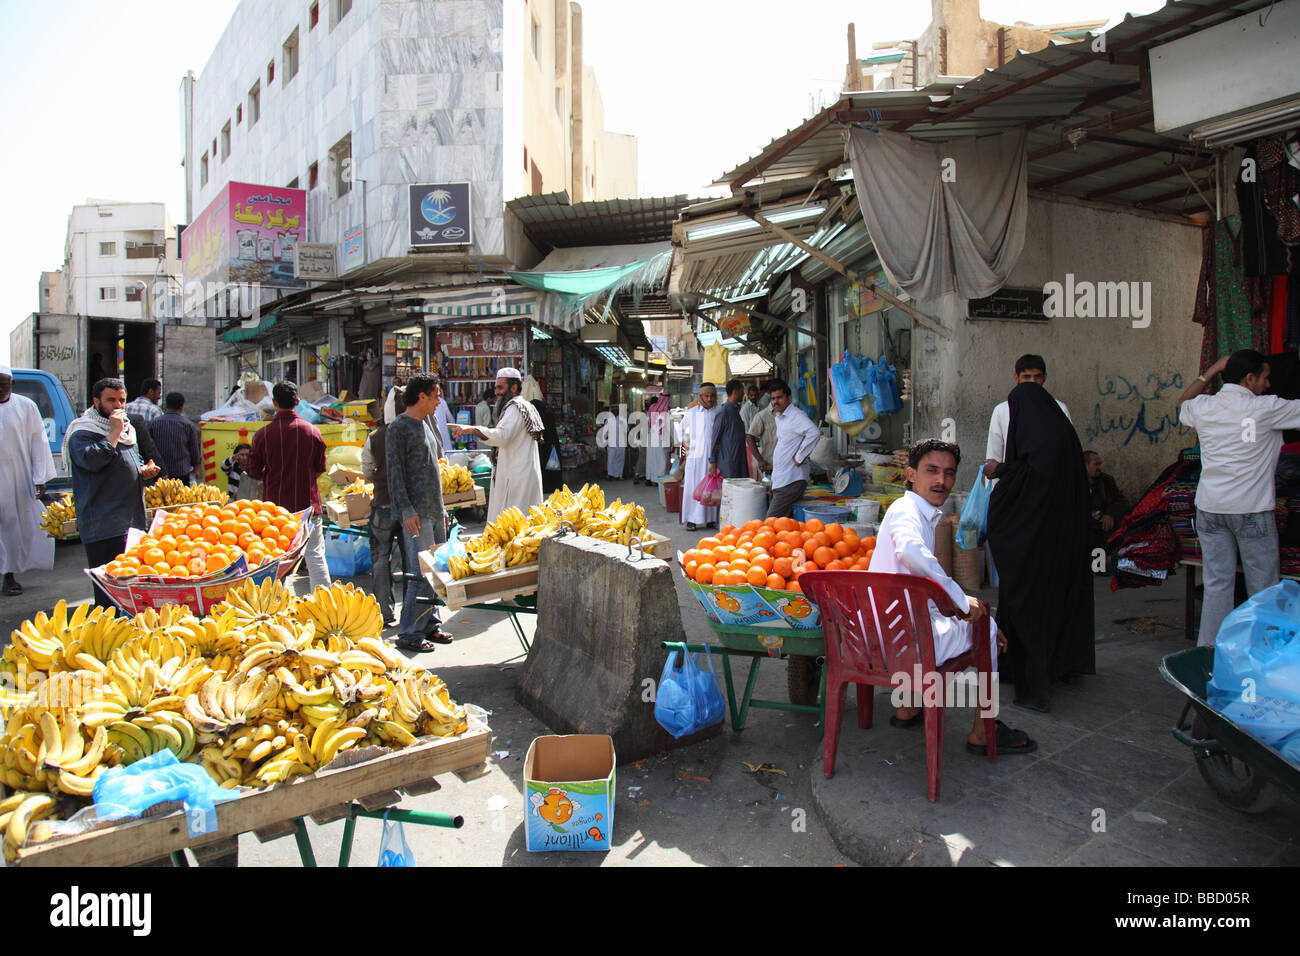 Traders in souk riyadh saudi arabia stock photo royalty for City indian dining ltd t a spice trader